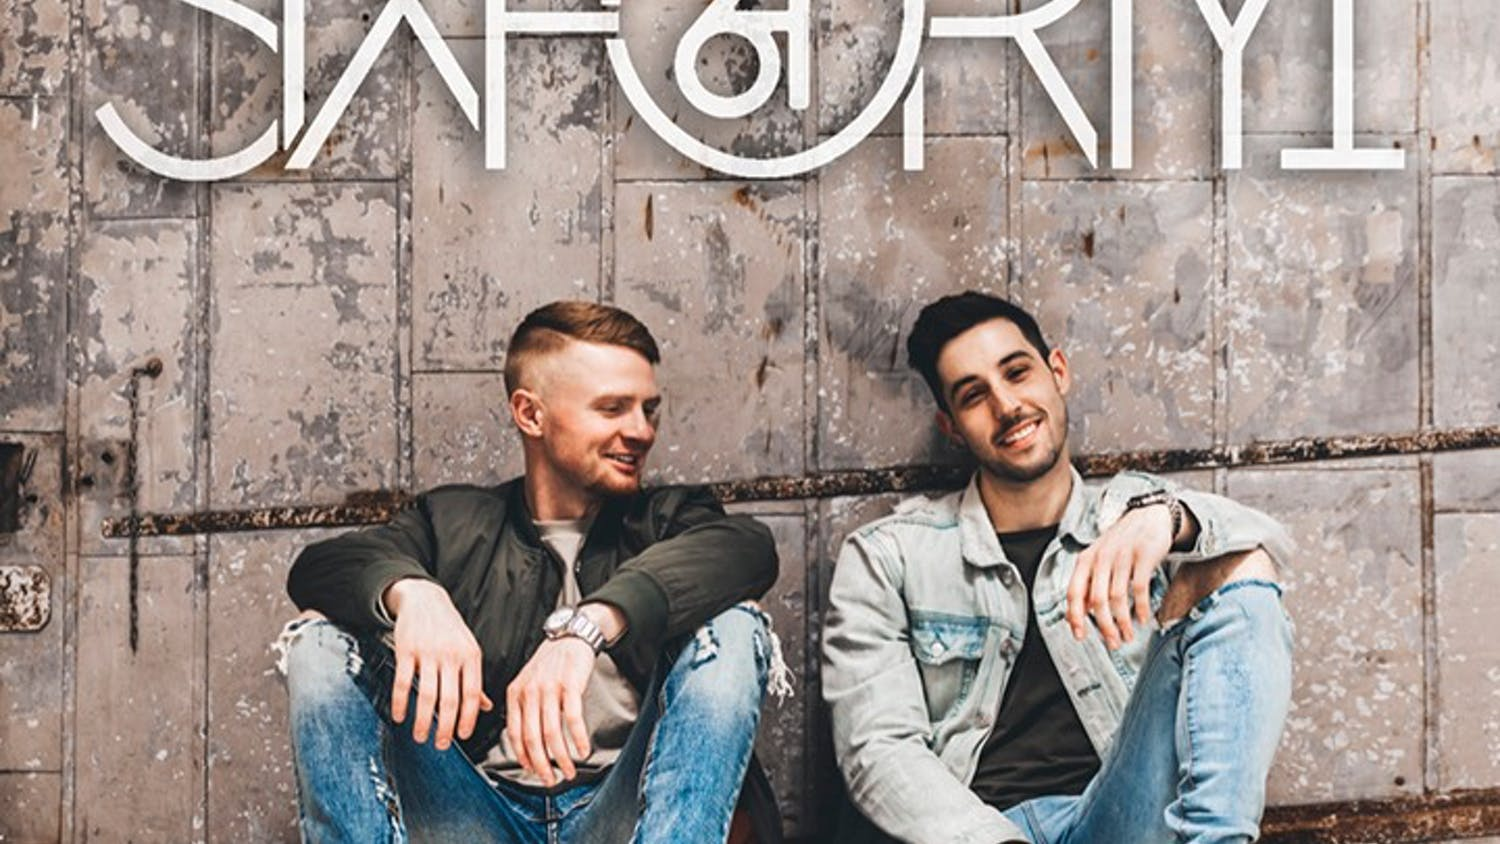 Austin Gee and Brooks Hoffman make up the new country music duo named SixForty1. The band will be hosting a free concert at The Senate this Saturday, Oct. 17.